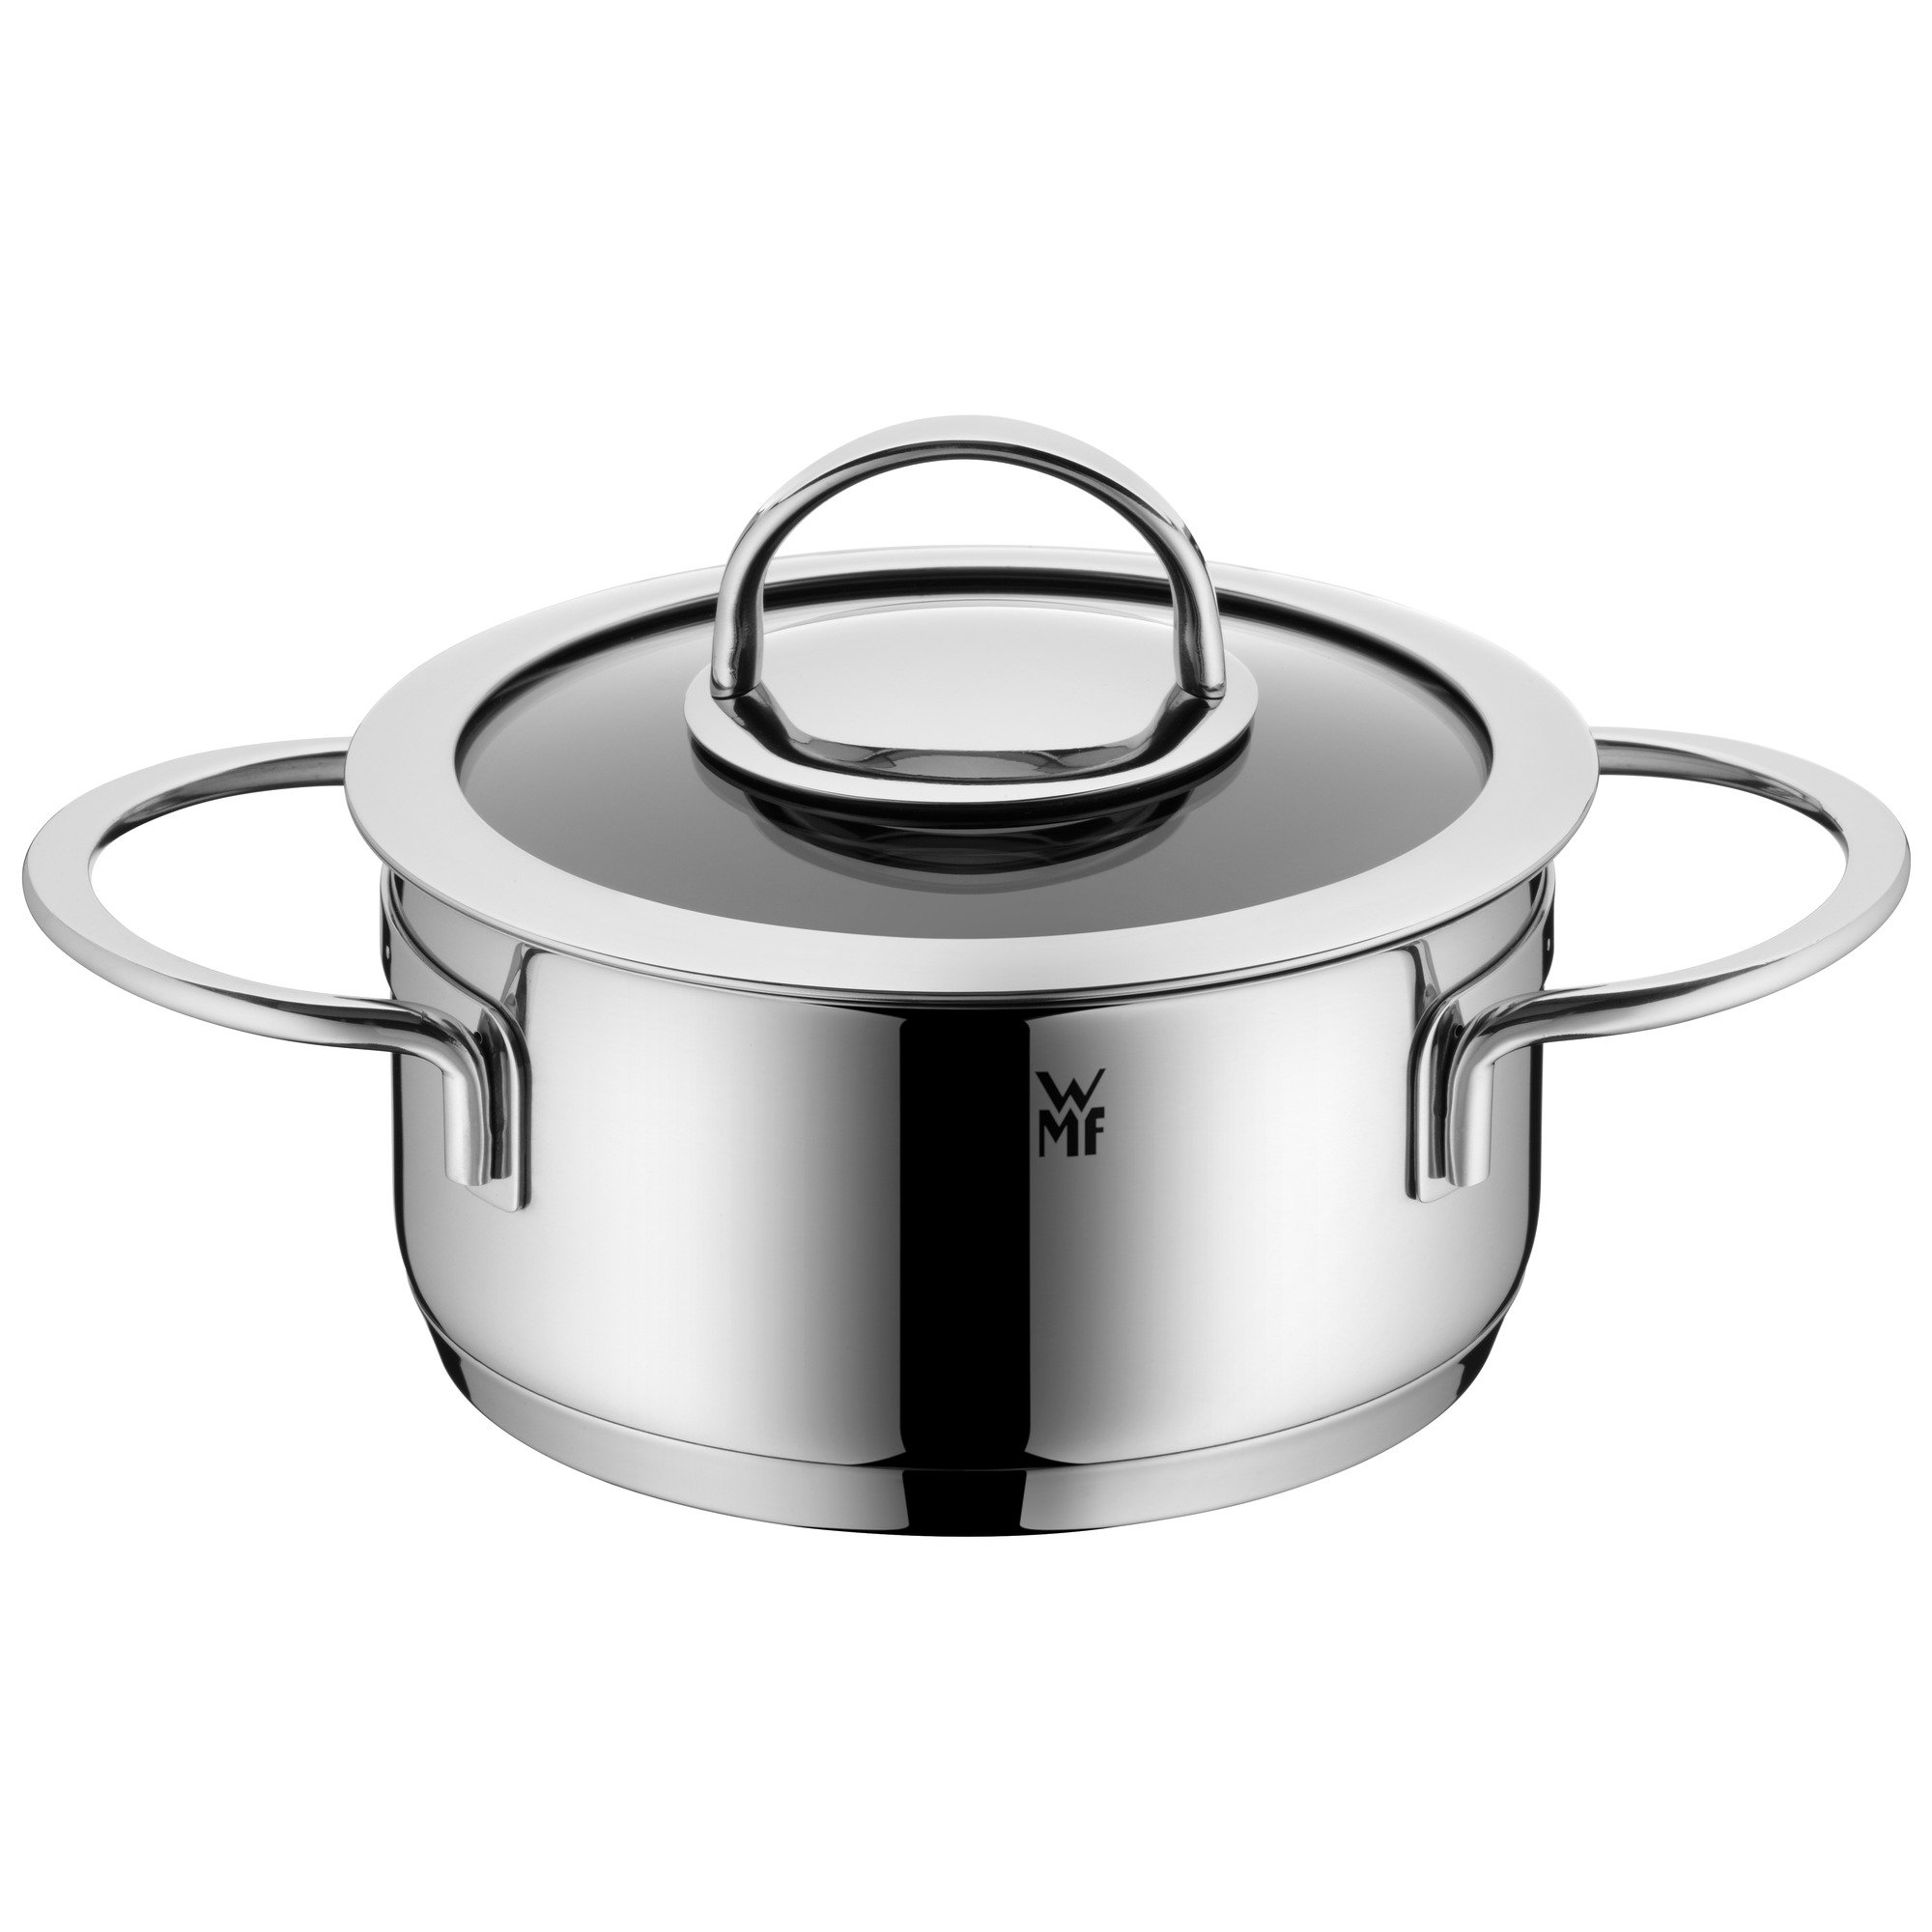 WMF Pot Ø 16 cm Approx. 1.4L Vignola Coated Glass Lid Cromargan Stainless Steel Polished Suitable for Induction Hobs Dishwasher-Safe